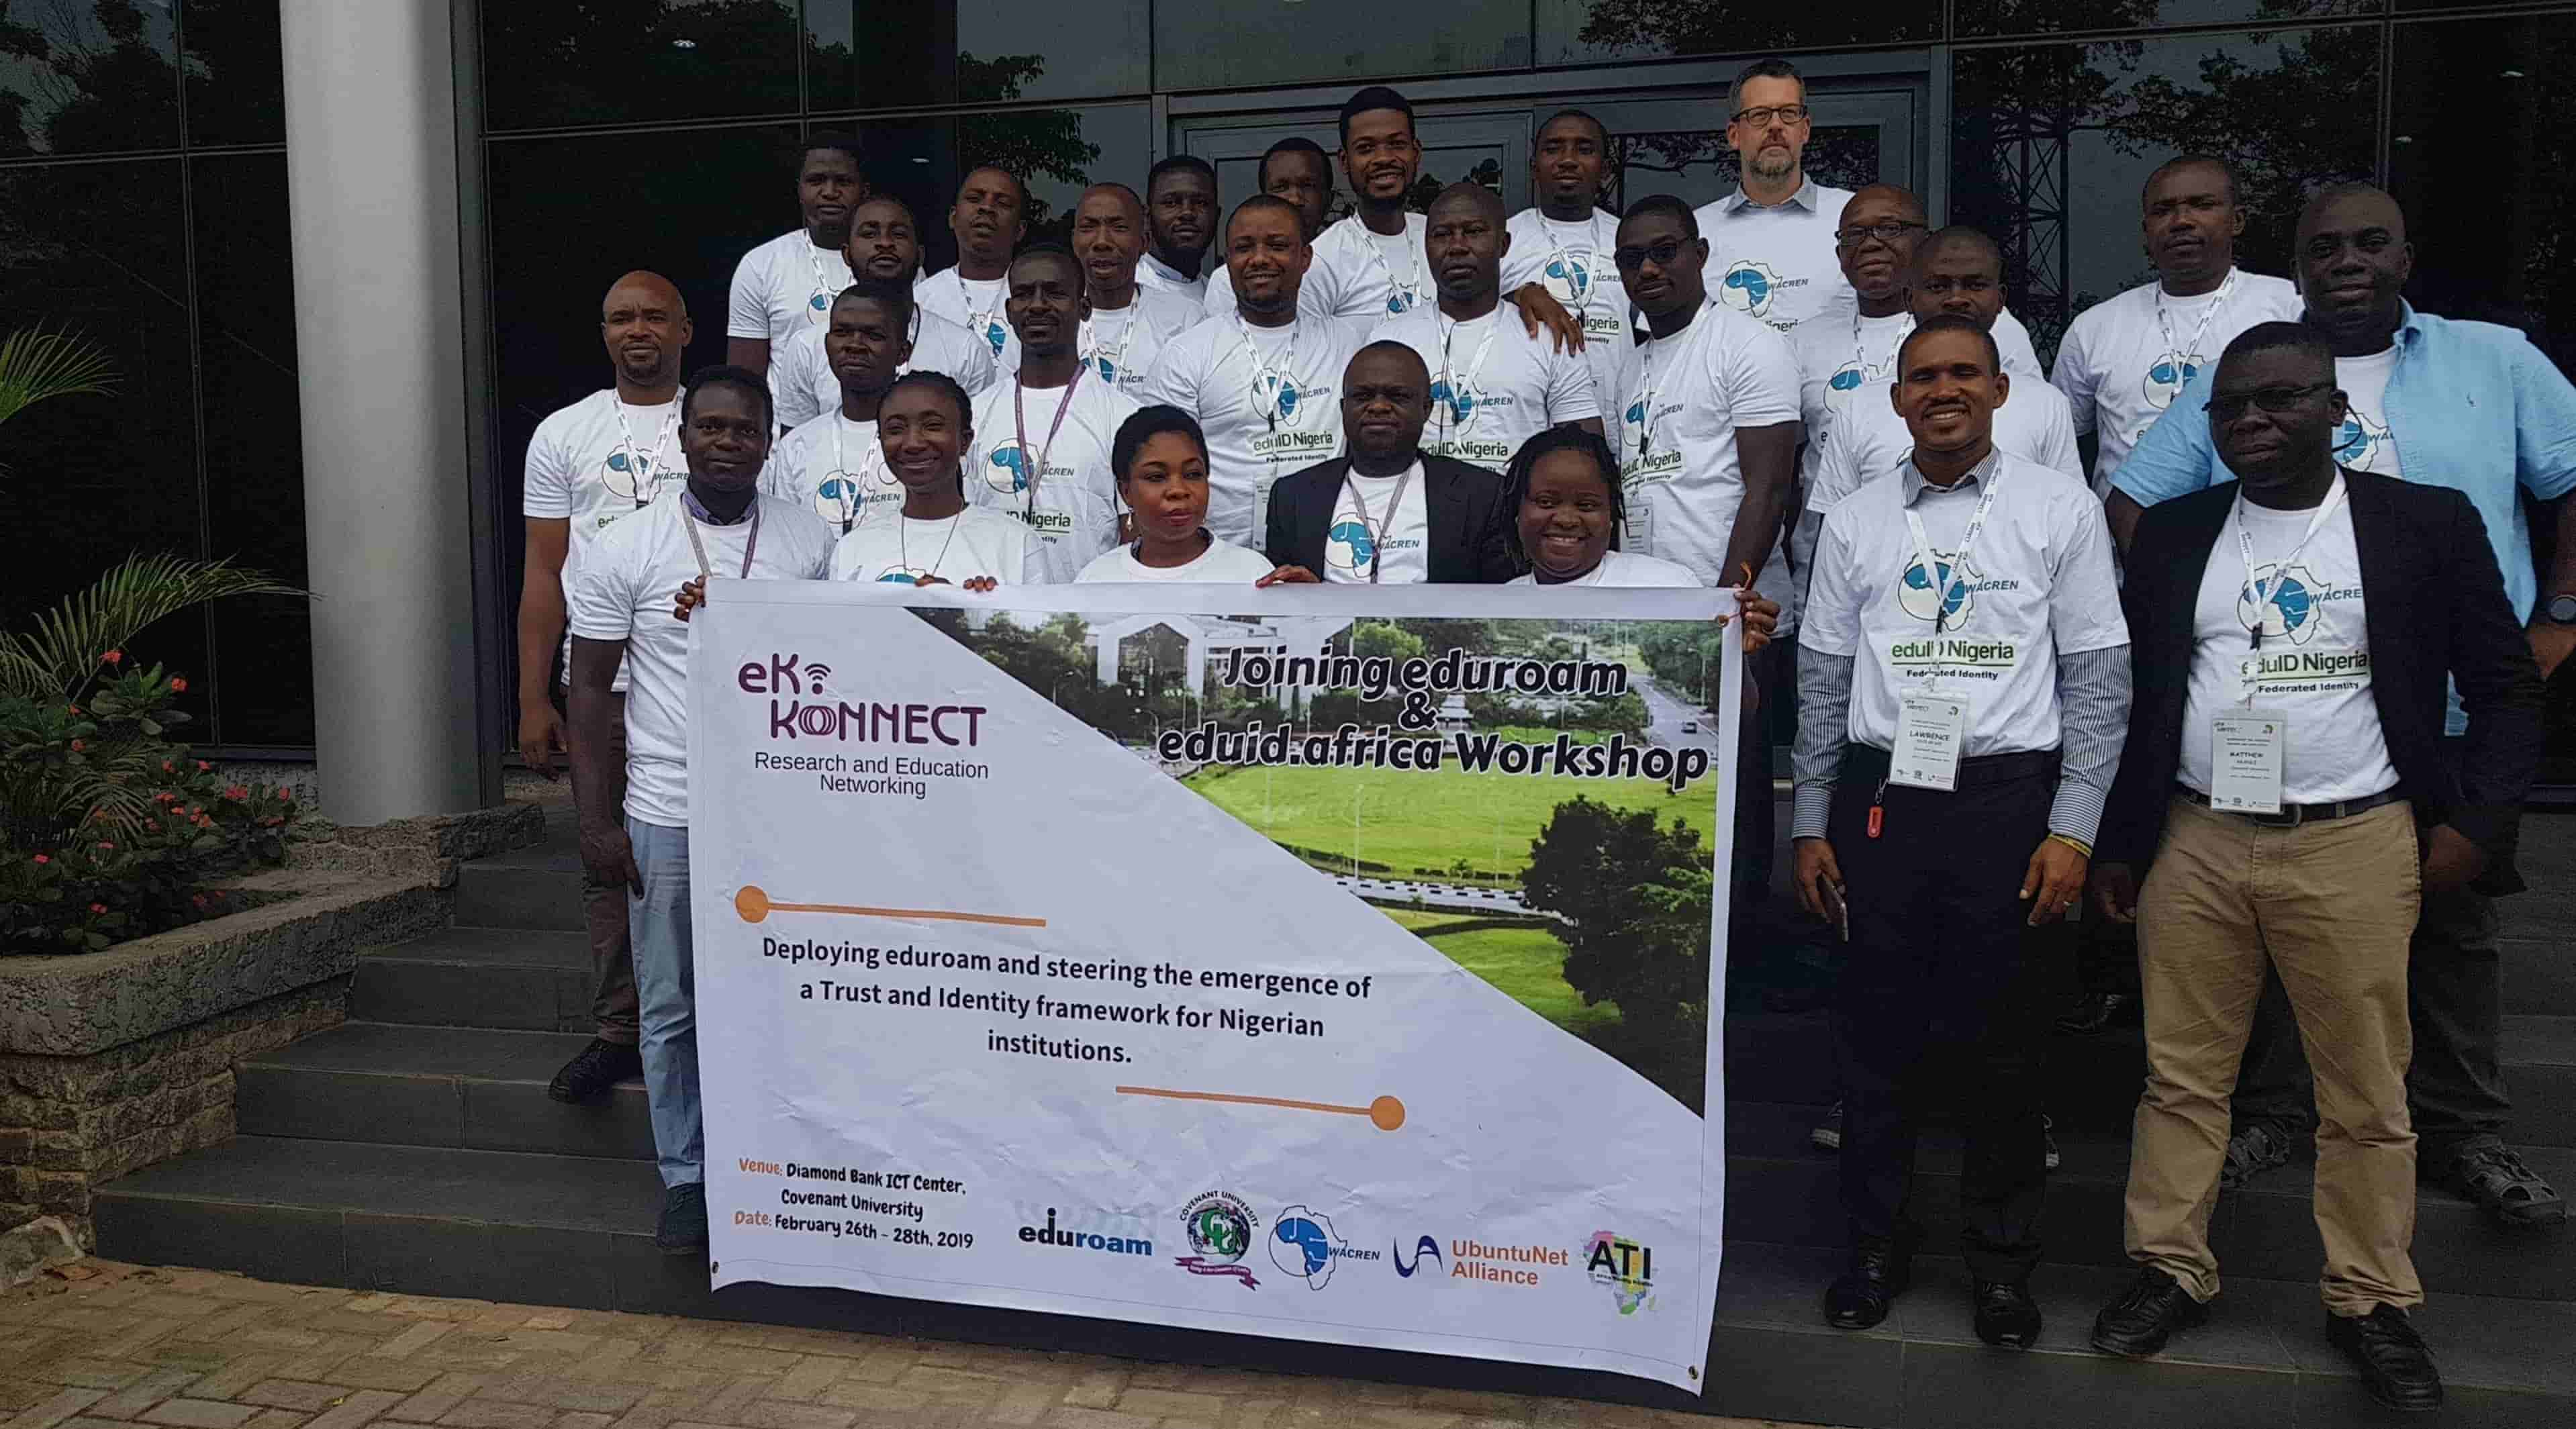 Joining eduID And eduroam Workshop Concludes - Institutions in Nigeria Commence eduroam Deployment